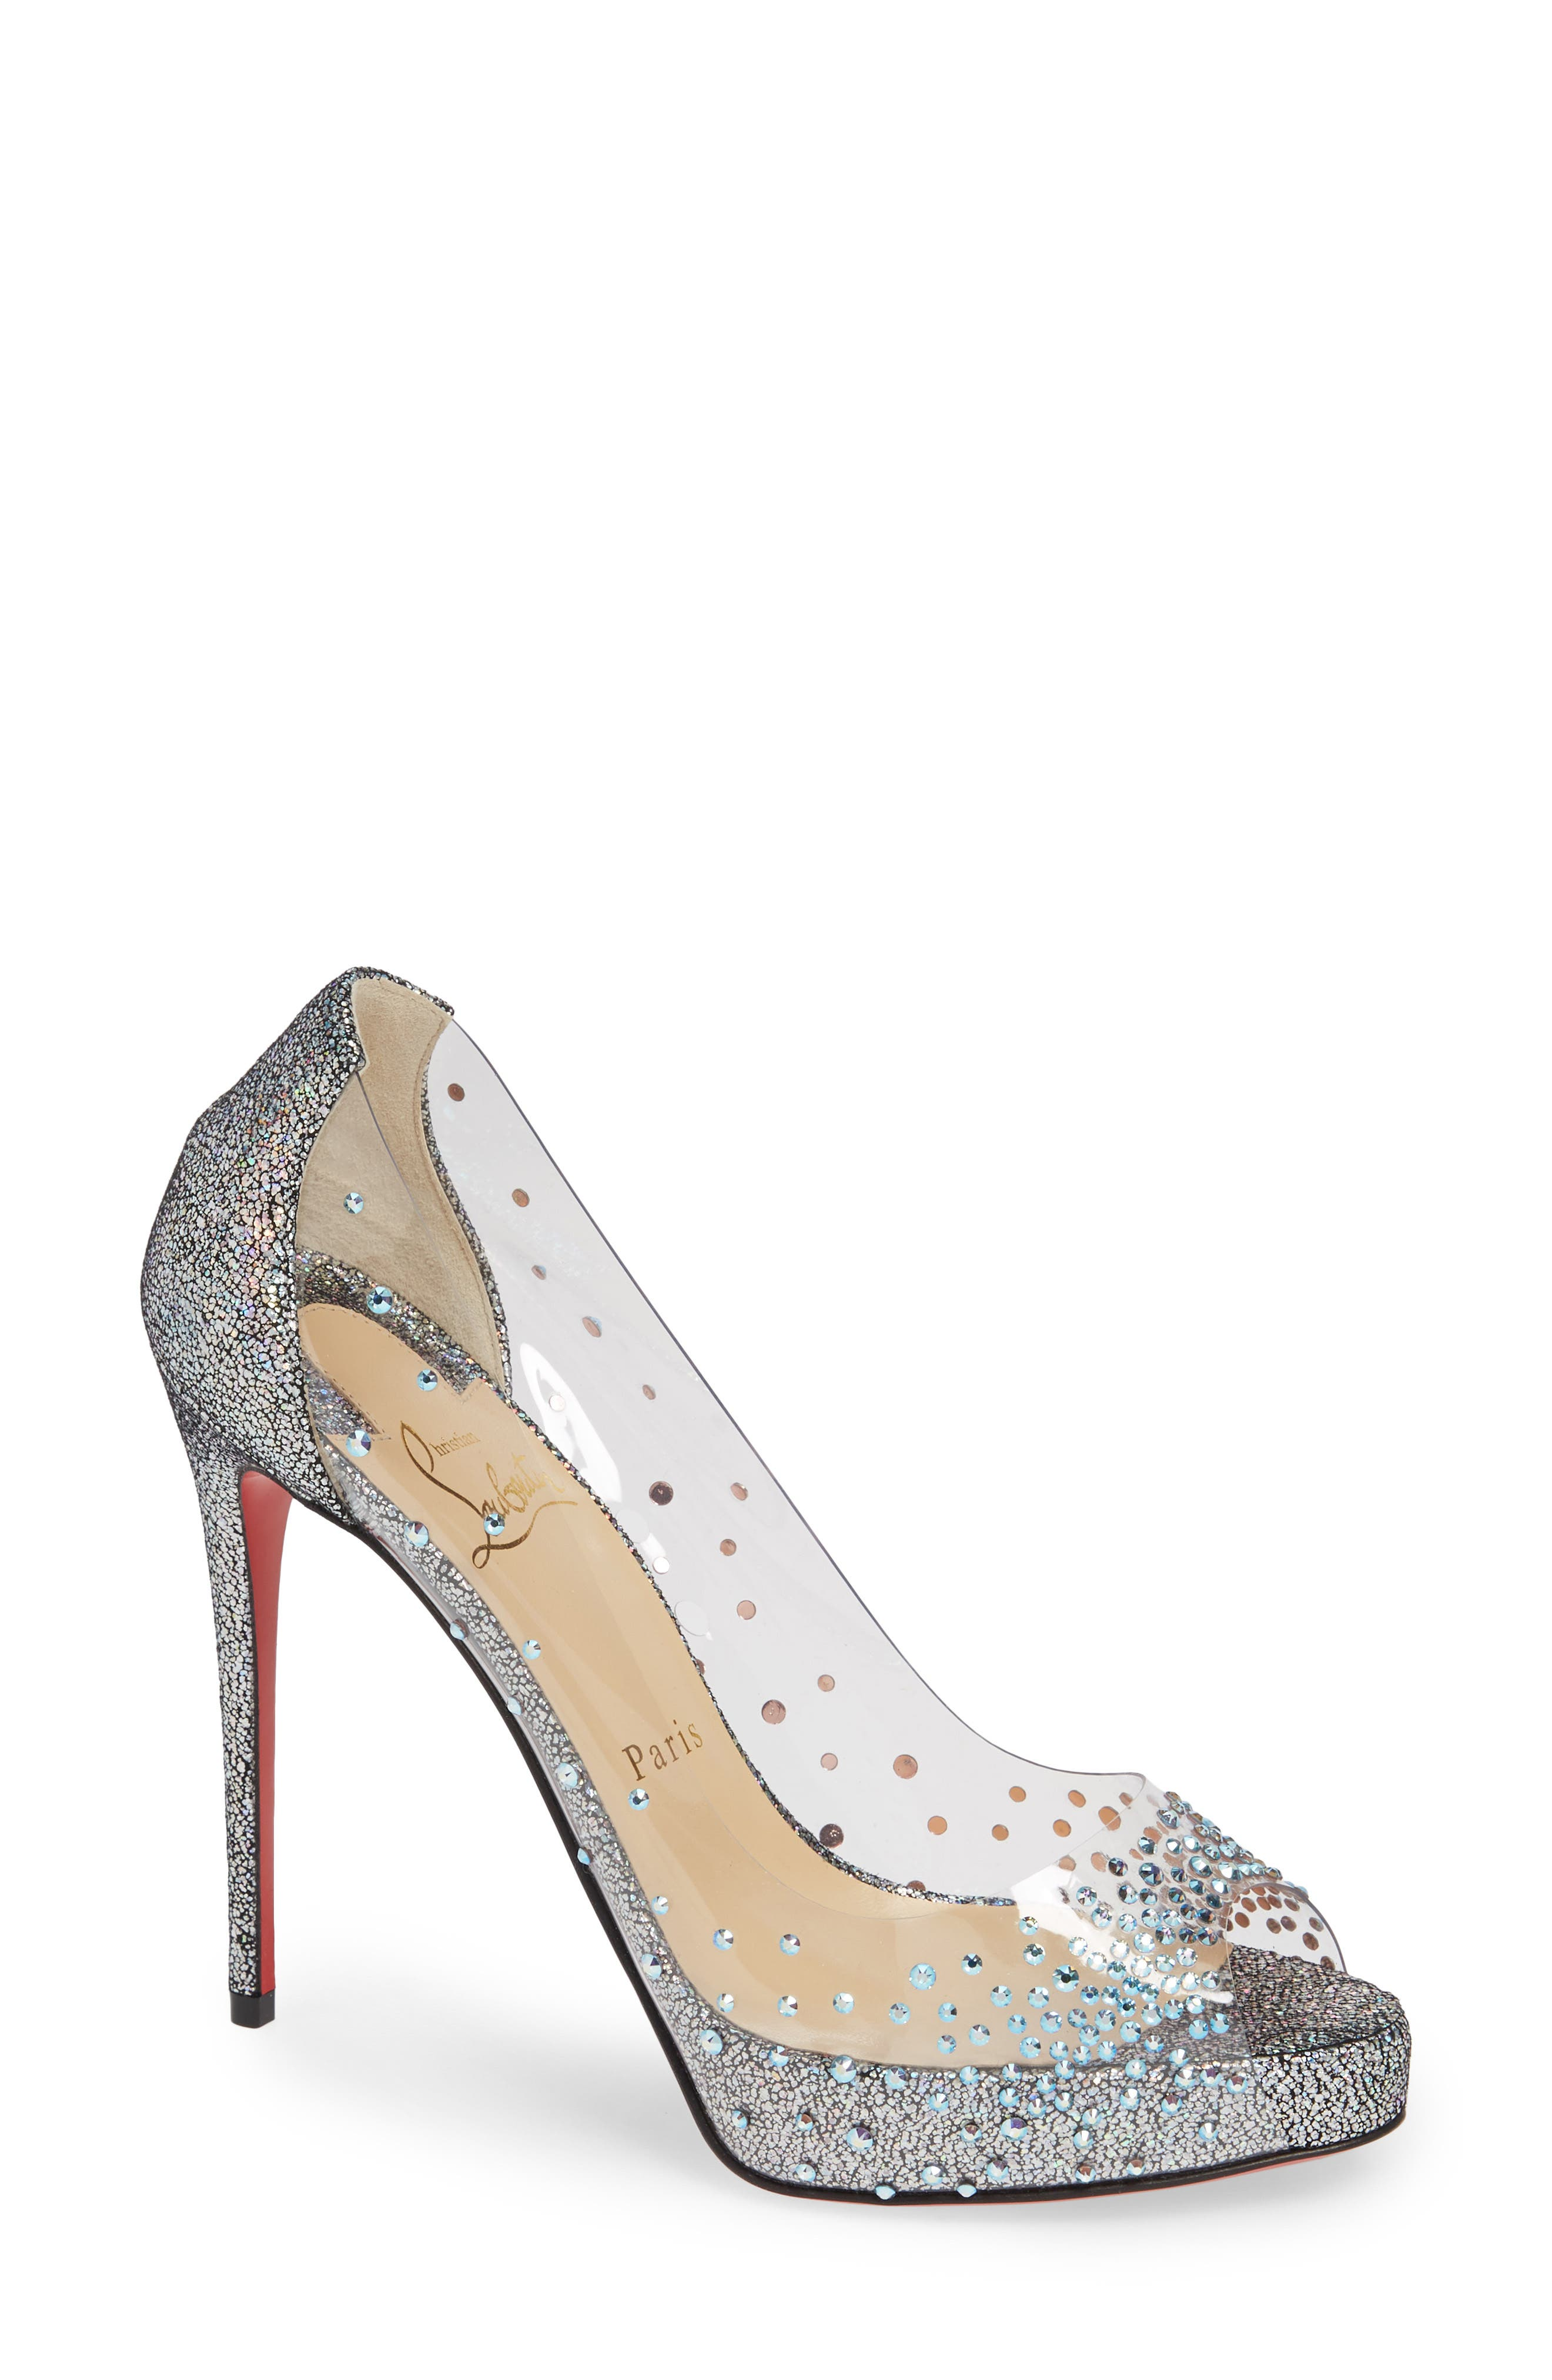 Christian Louboutin Very Strass Embellished Peep Toe Pump - Metallic (Nordstrom Exclusive)